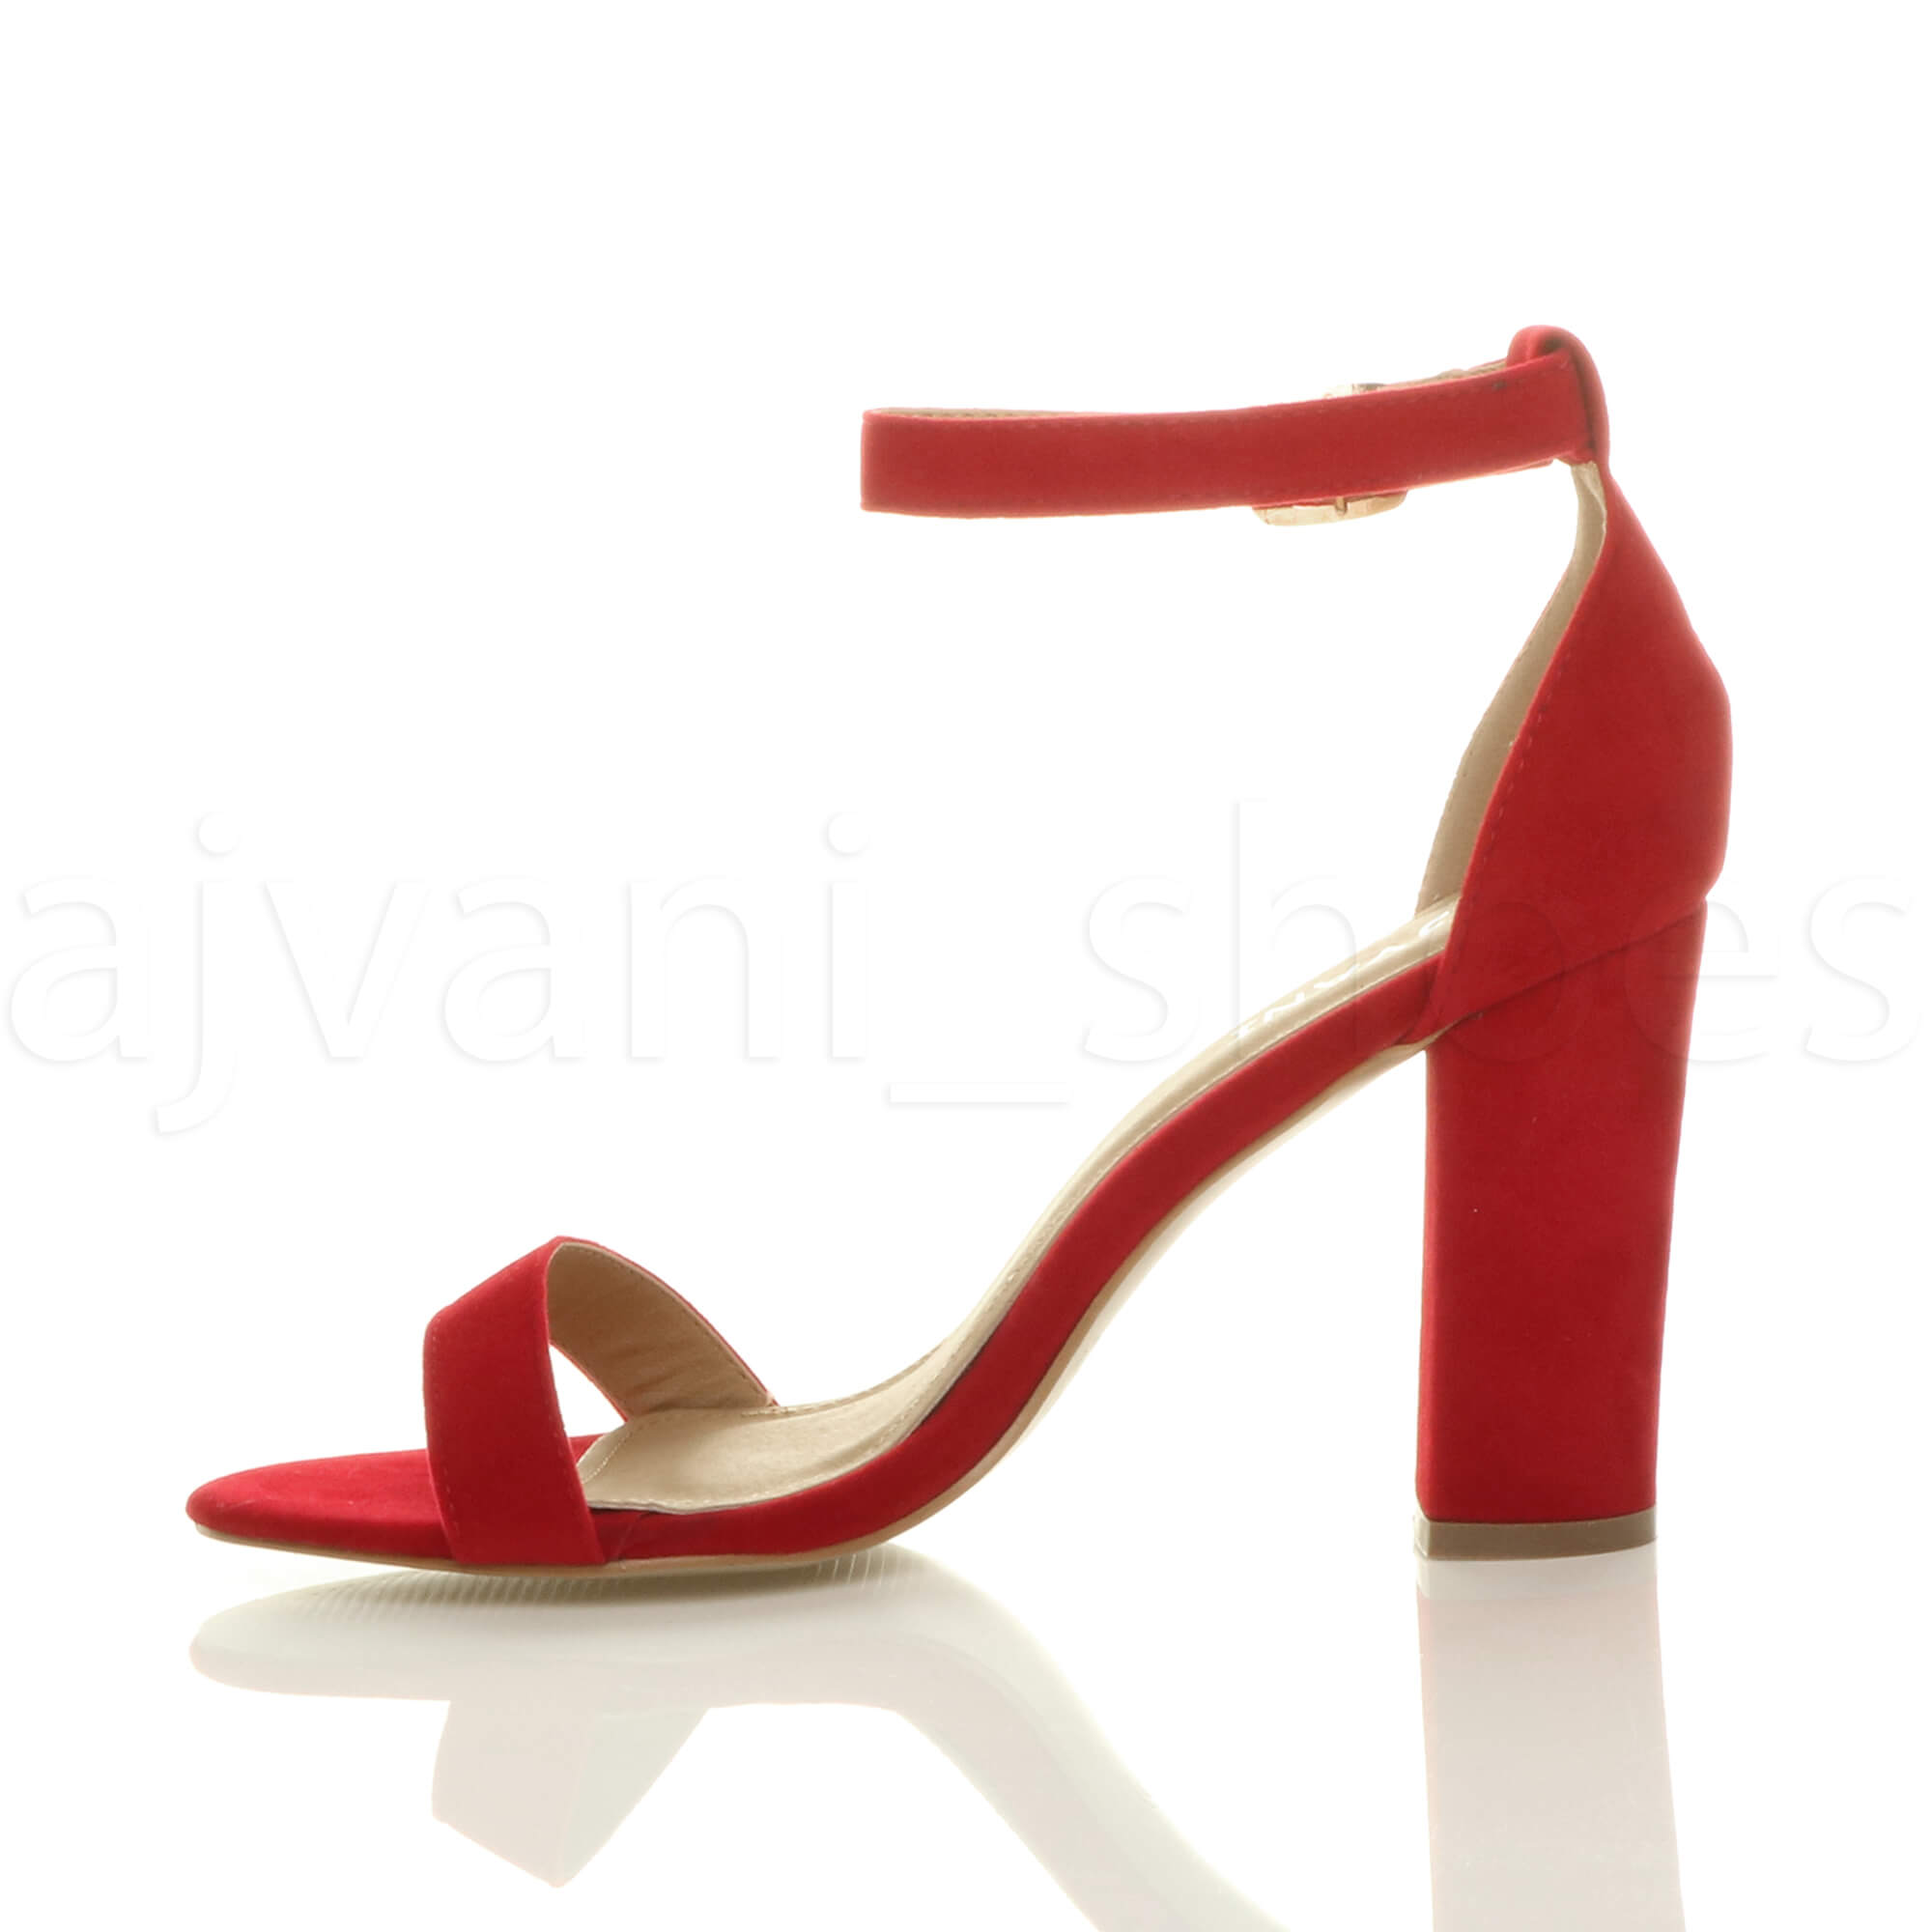 WOMENS-LADIES-BLOCK-HIGH-HEEL-ANKLE-STRAP-PEEP-TOE-STRAPPY-SANDALS-SHOES-SIZE thumbnail 118